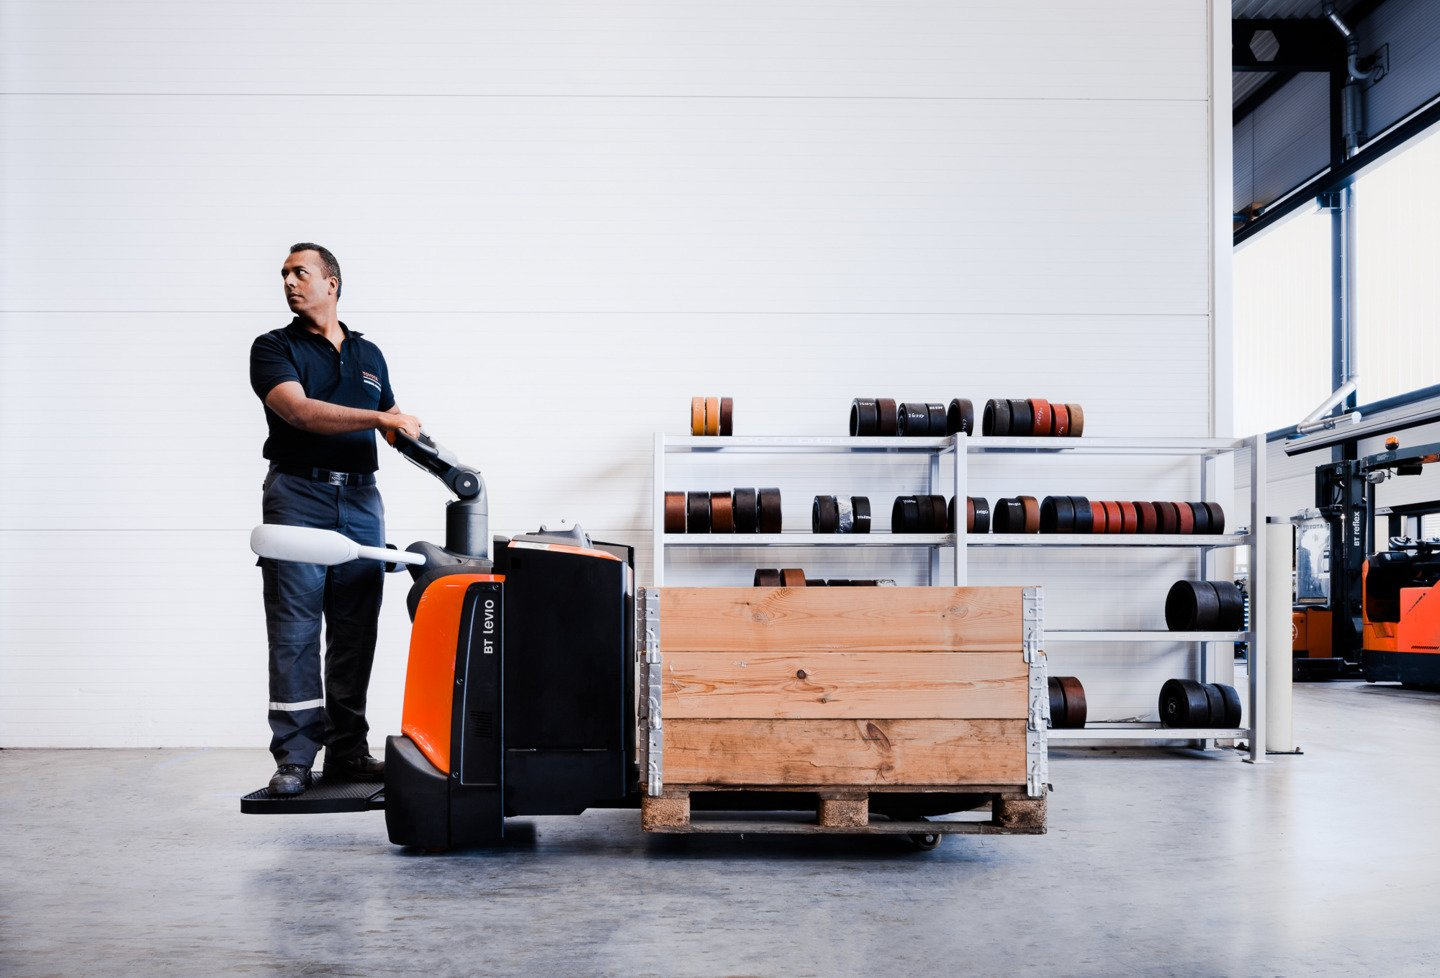 platform-powered-pallet-truck